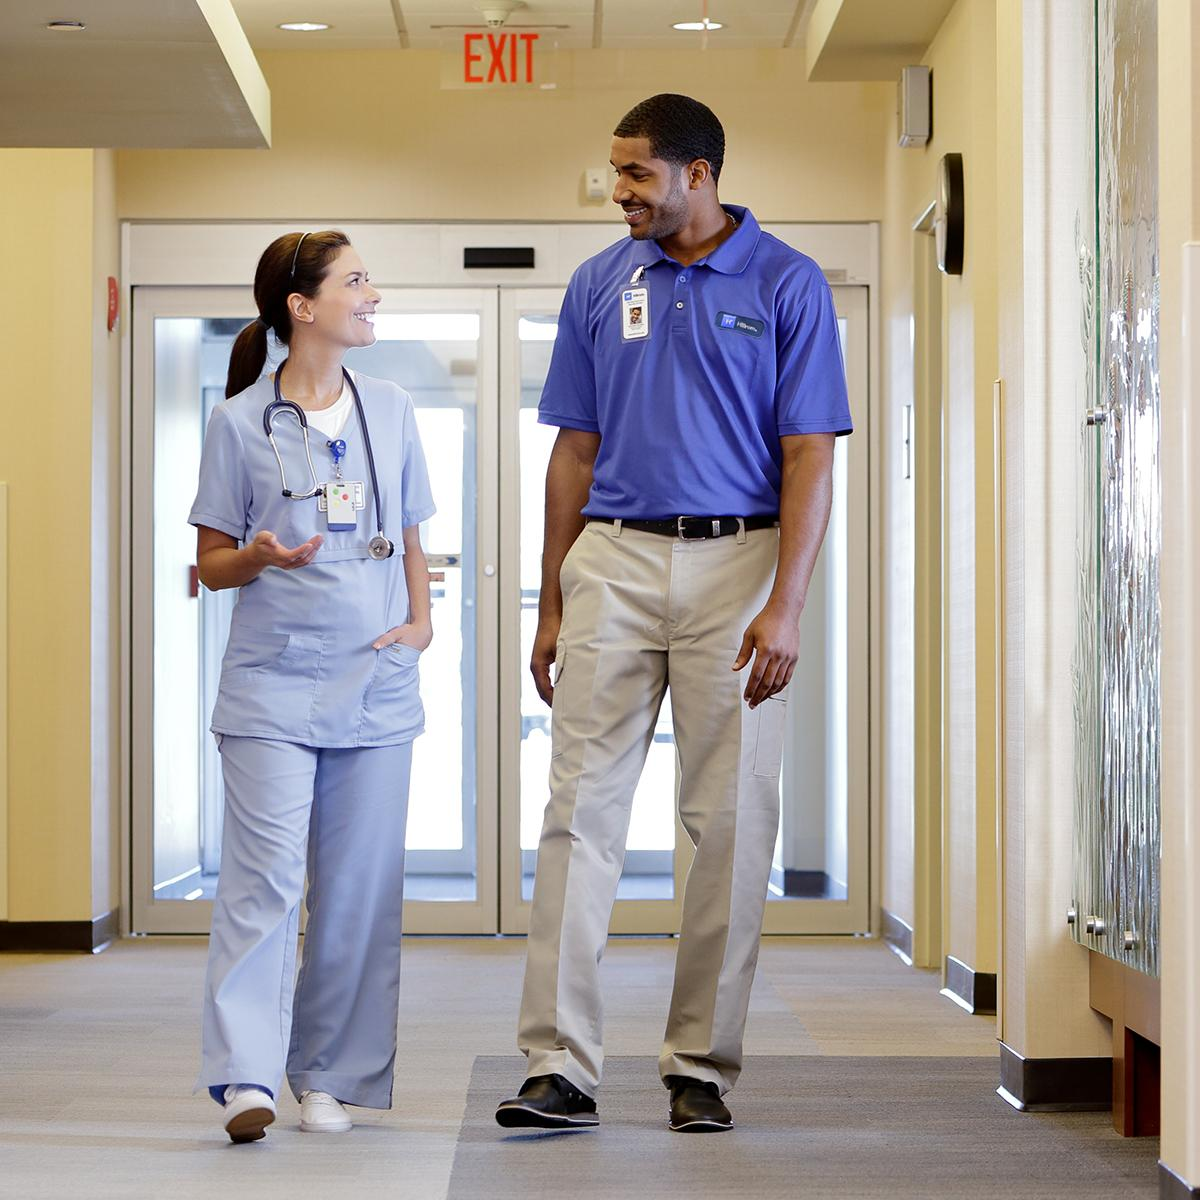 A clinician and a Hillrom support professional chat as they walk in a healthcare facility corridor.